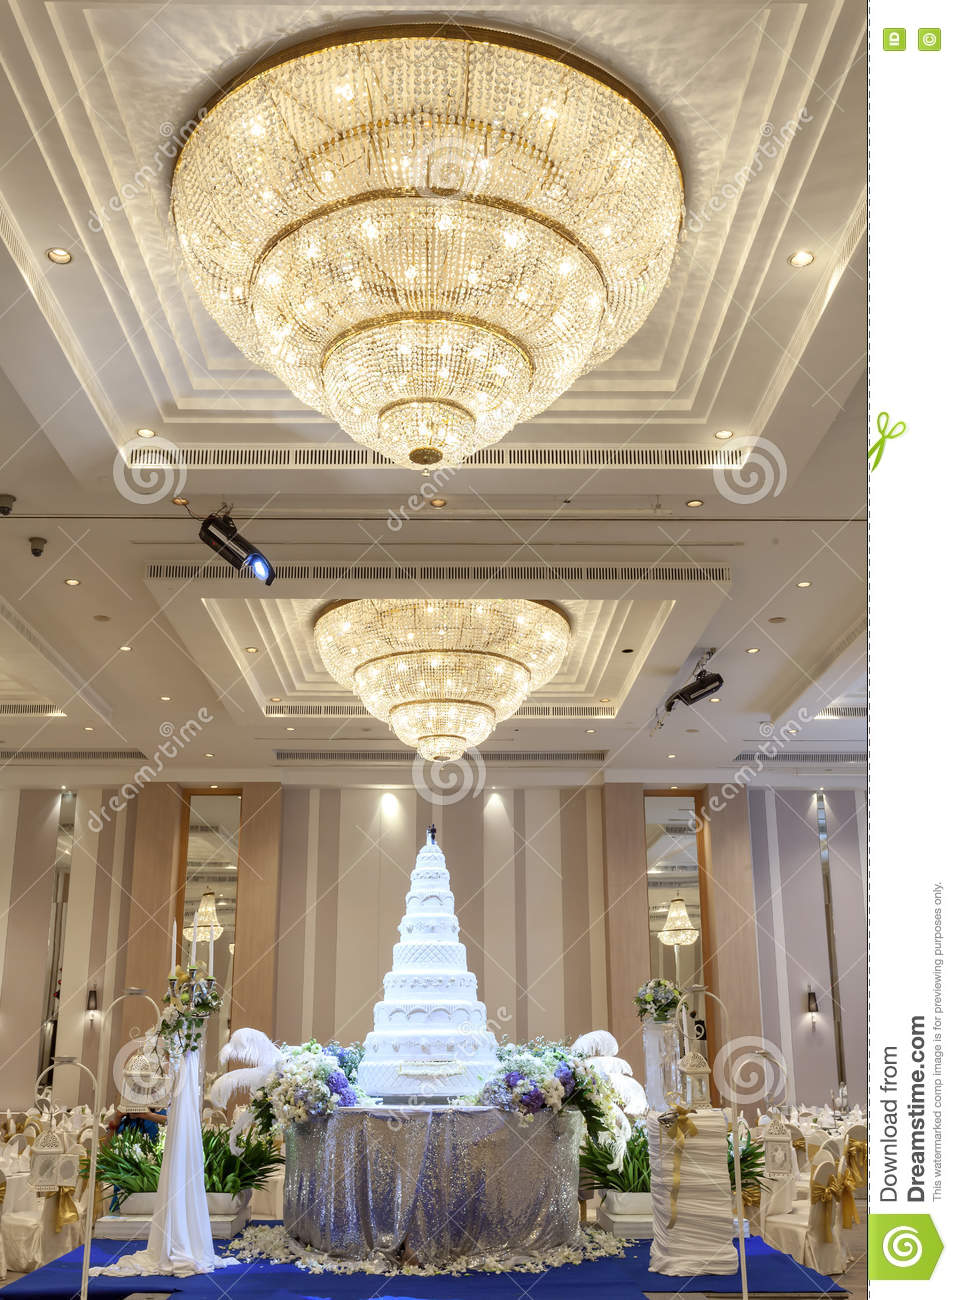 Wedding Cake And Flowers Decorations With Chandelier On